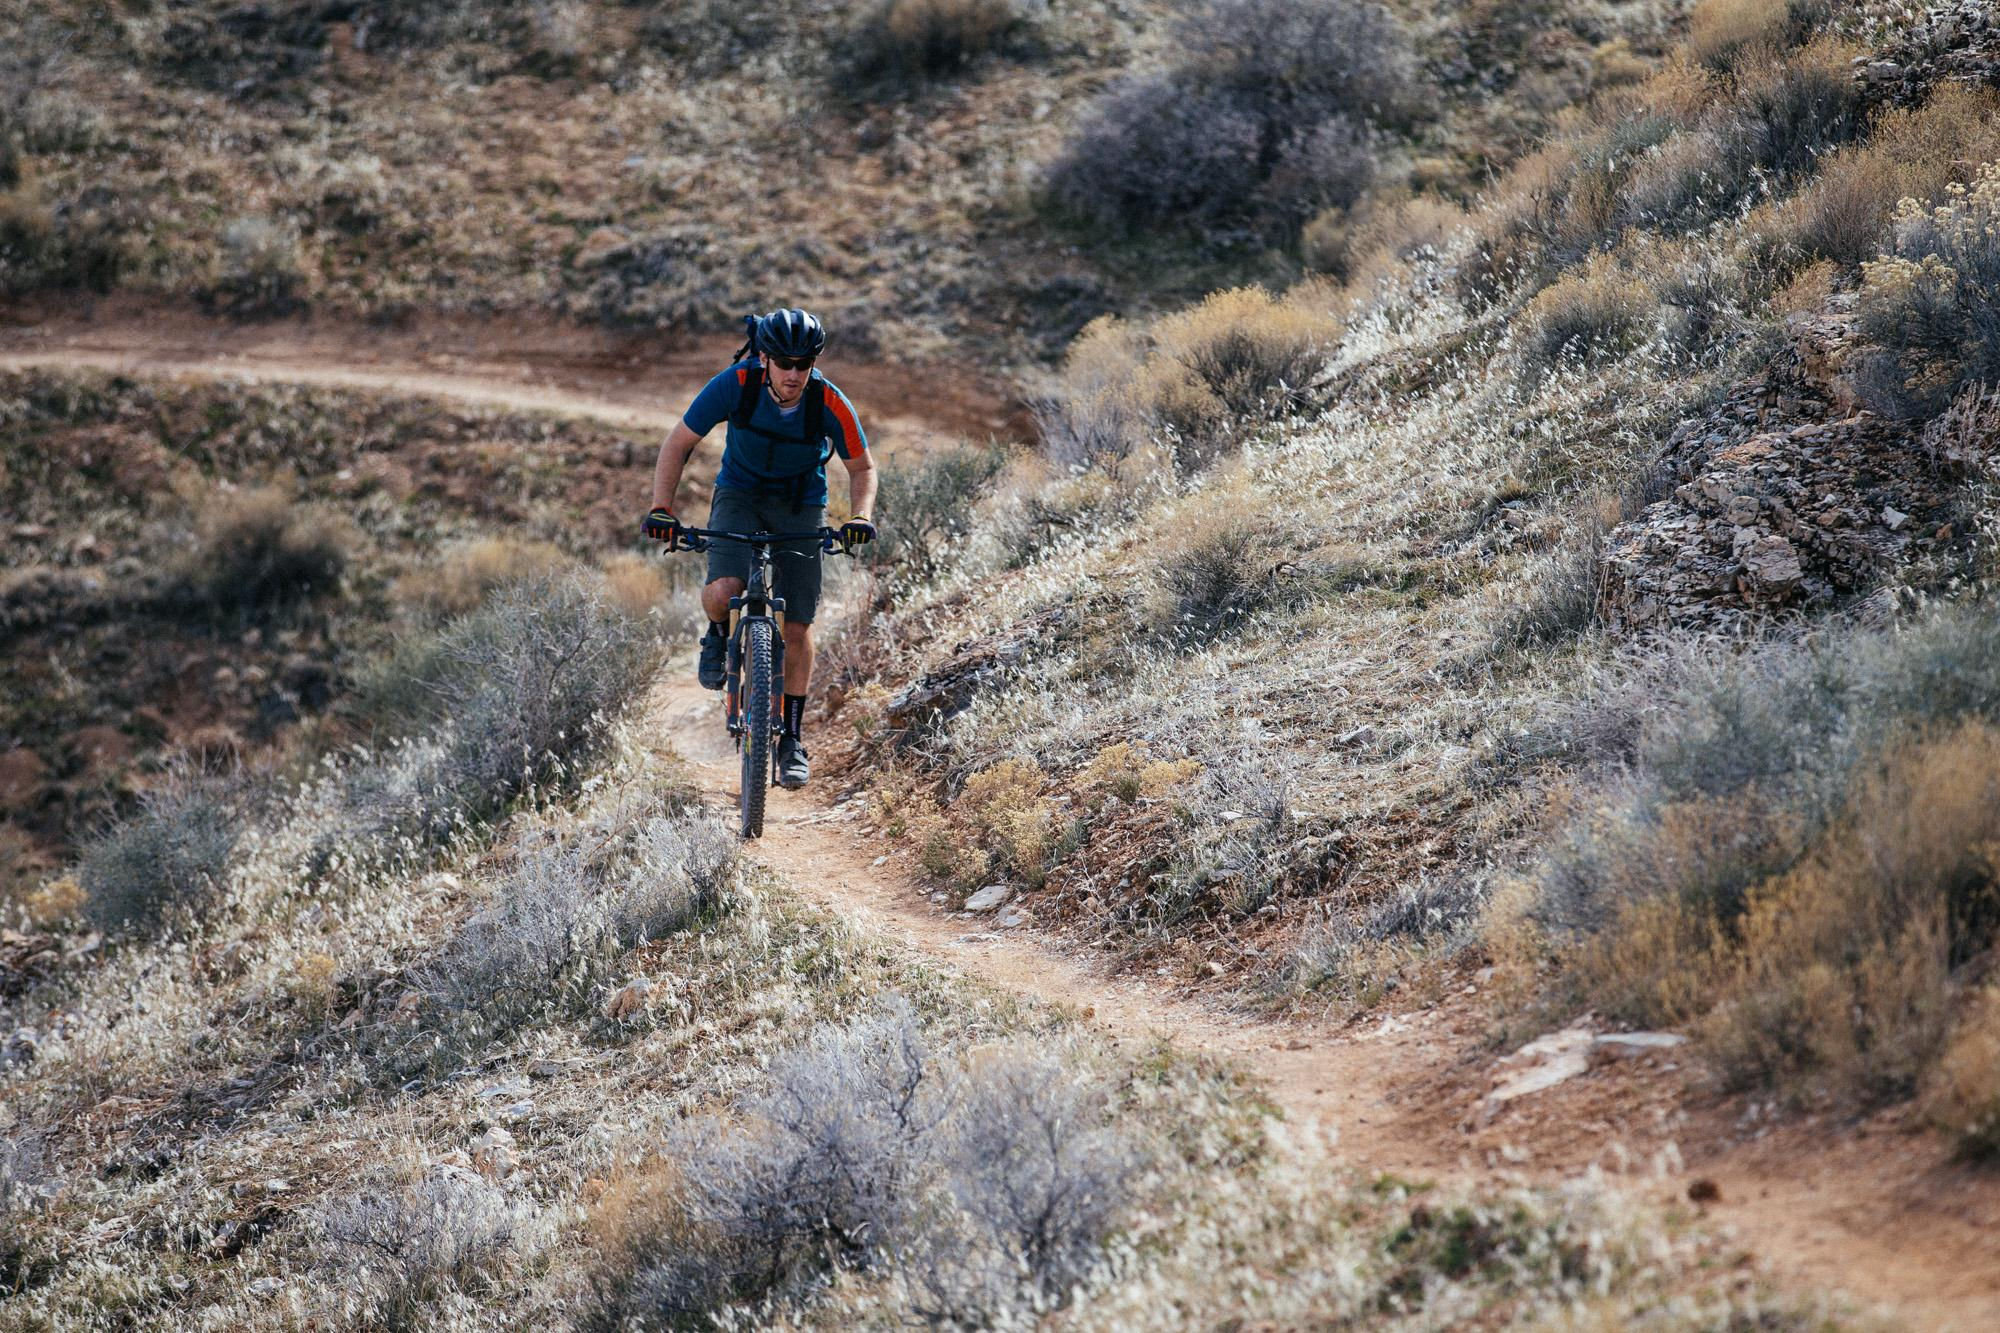 Most of the trail is flowy singletrack.